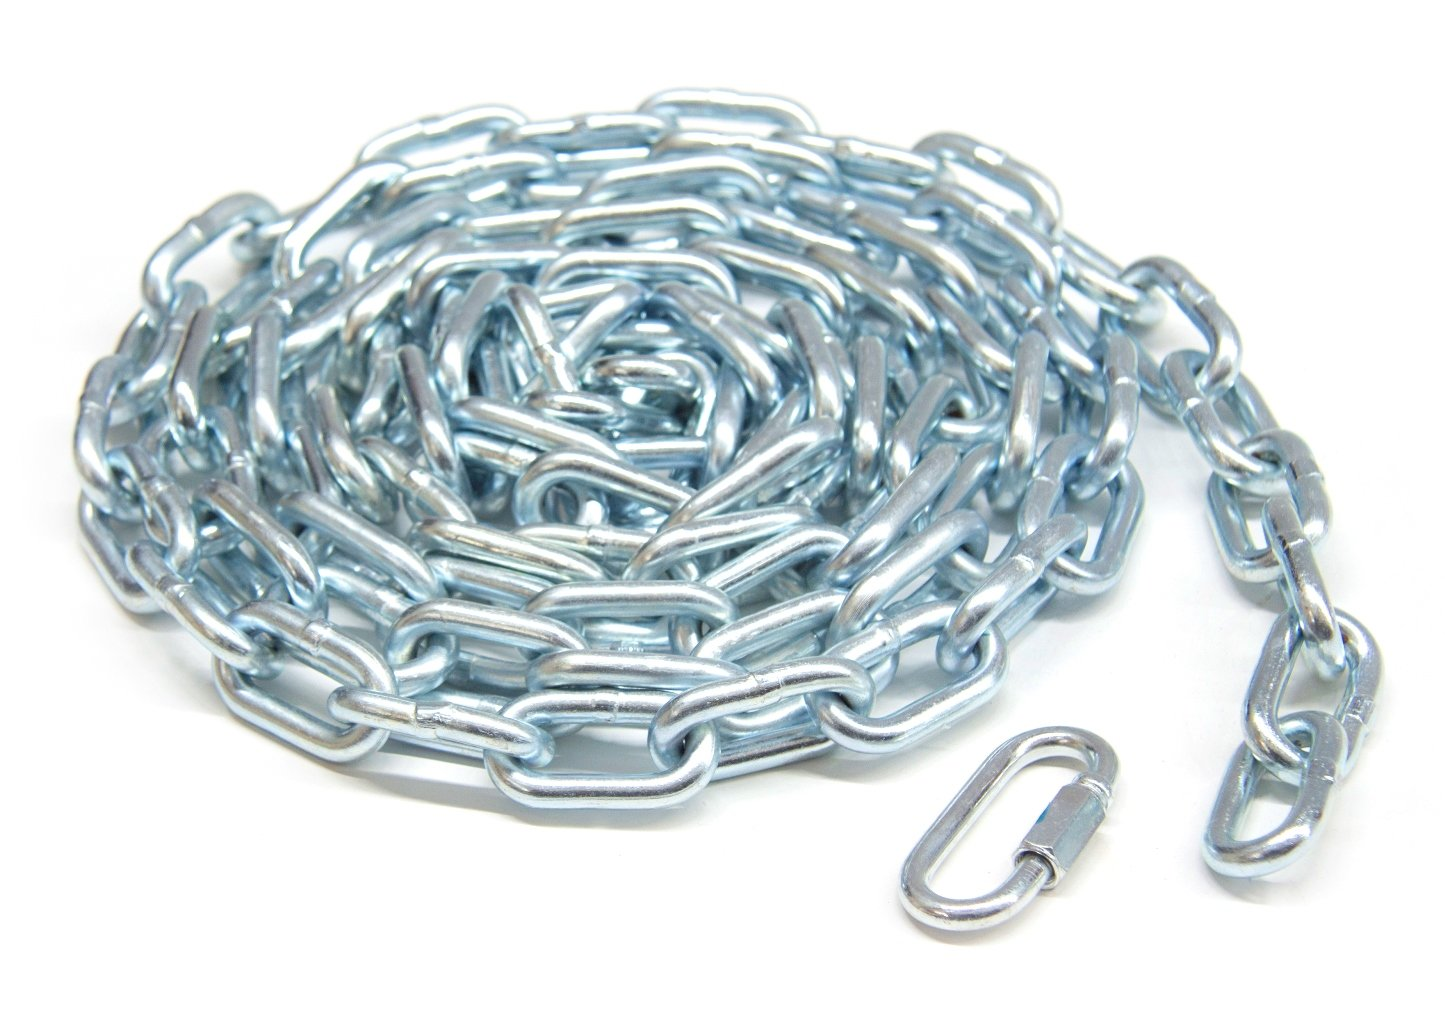 KingChain 699471 1 4 x 10' Zinc Plated Grade 30 Proof Coil Chain